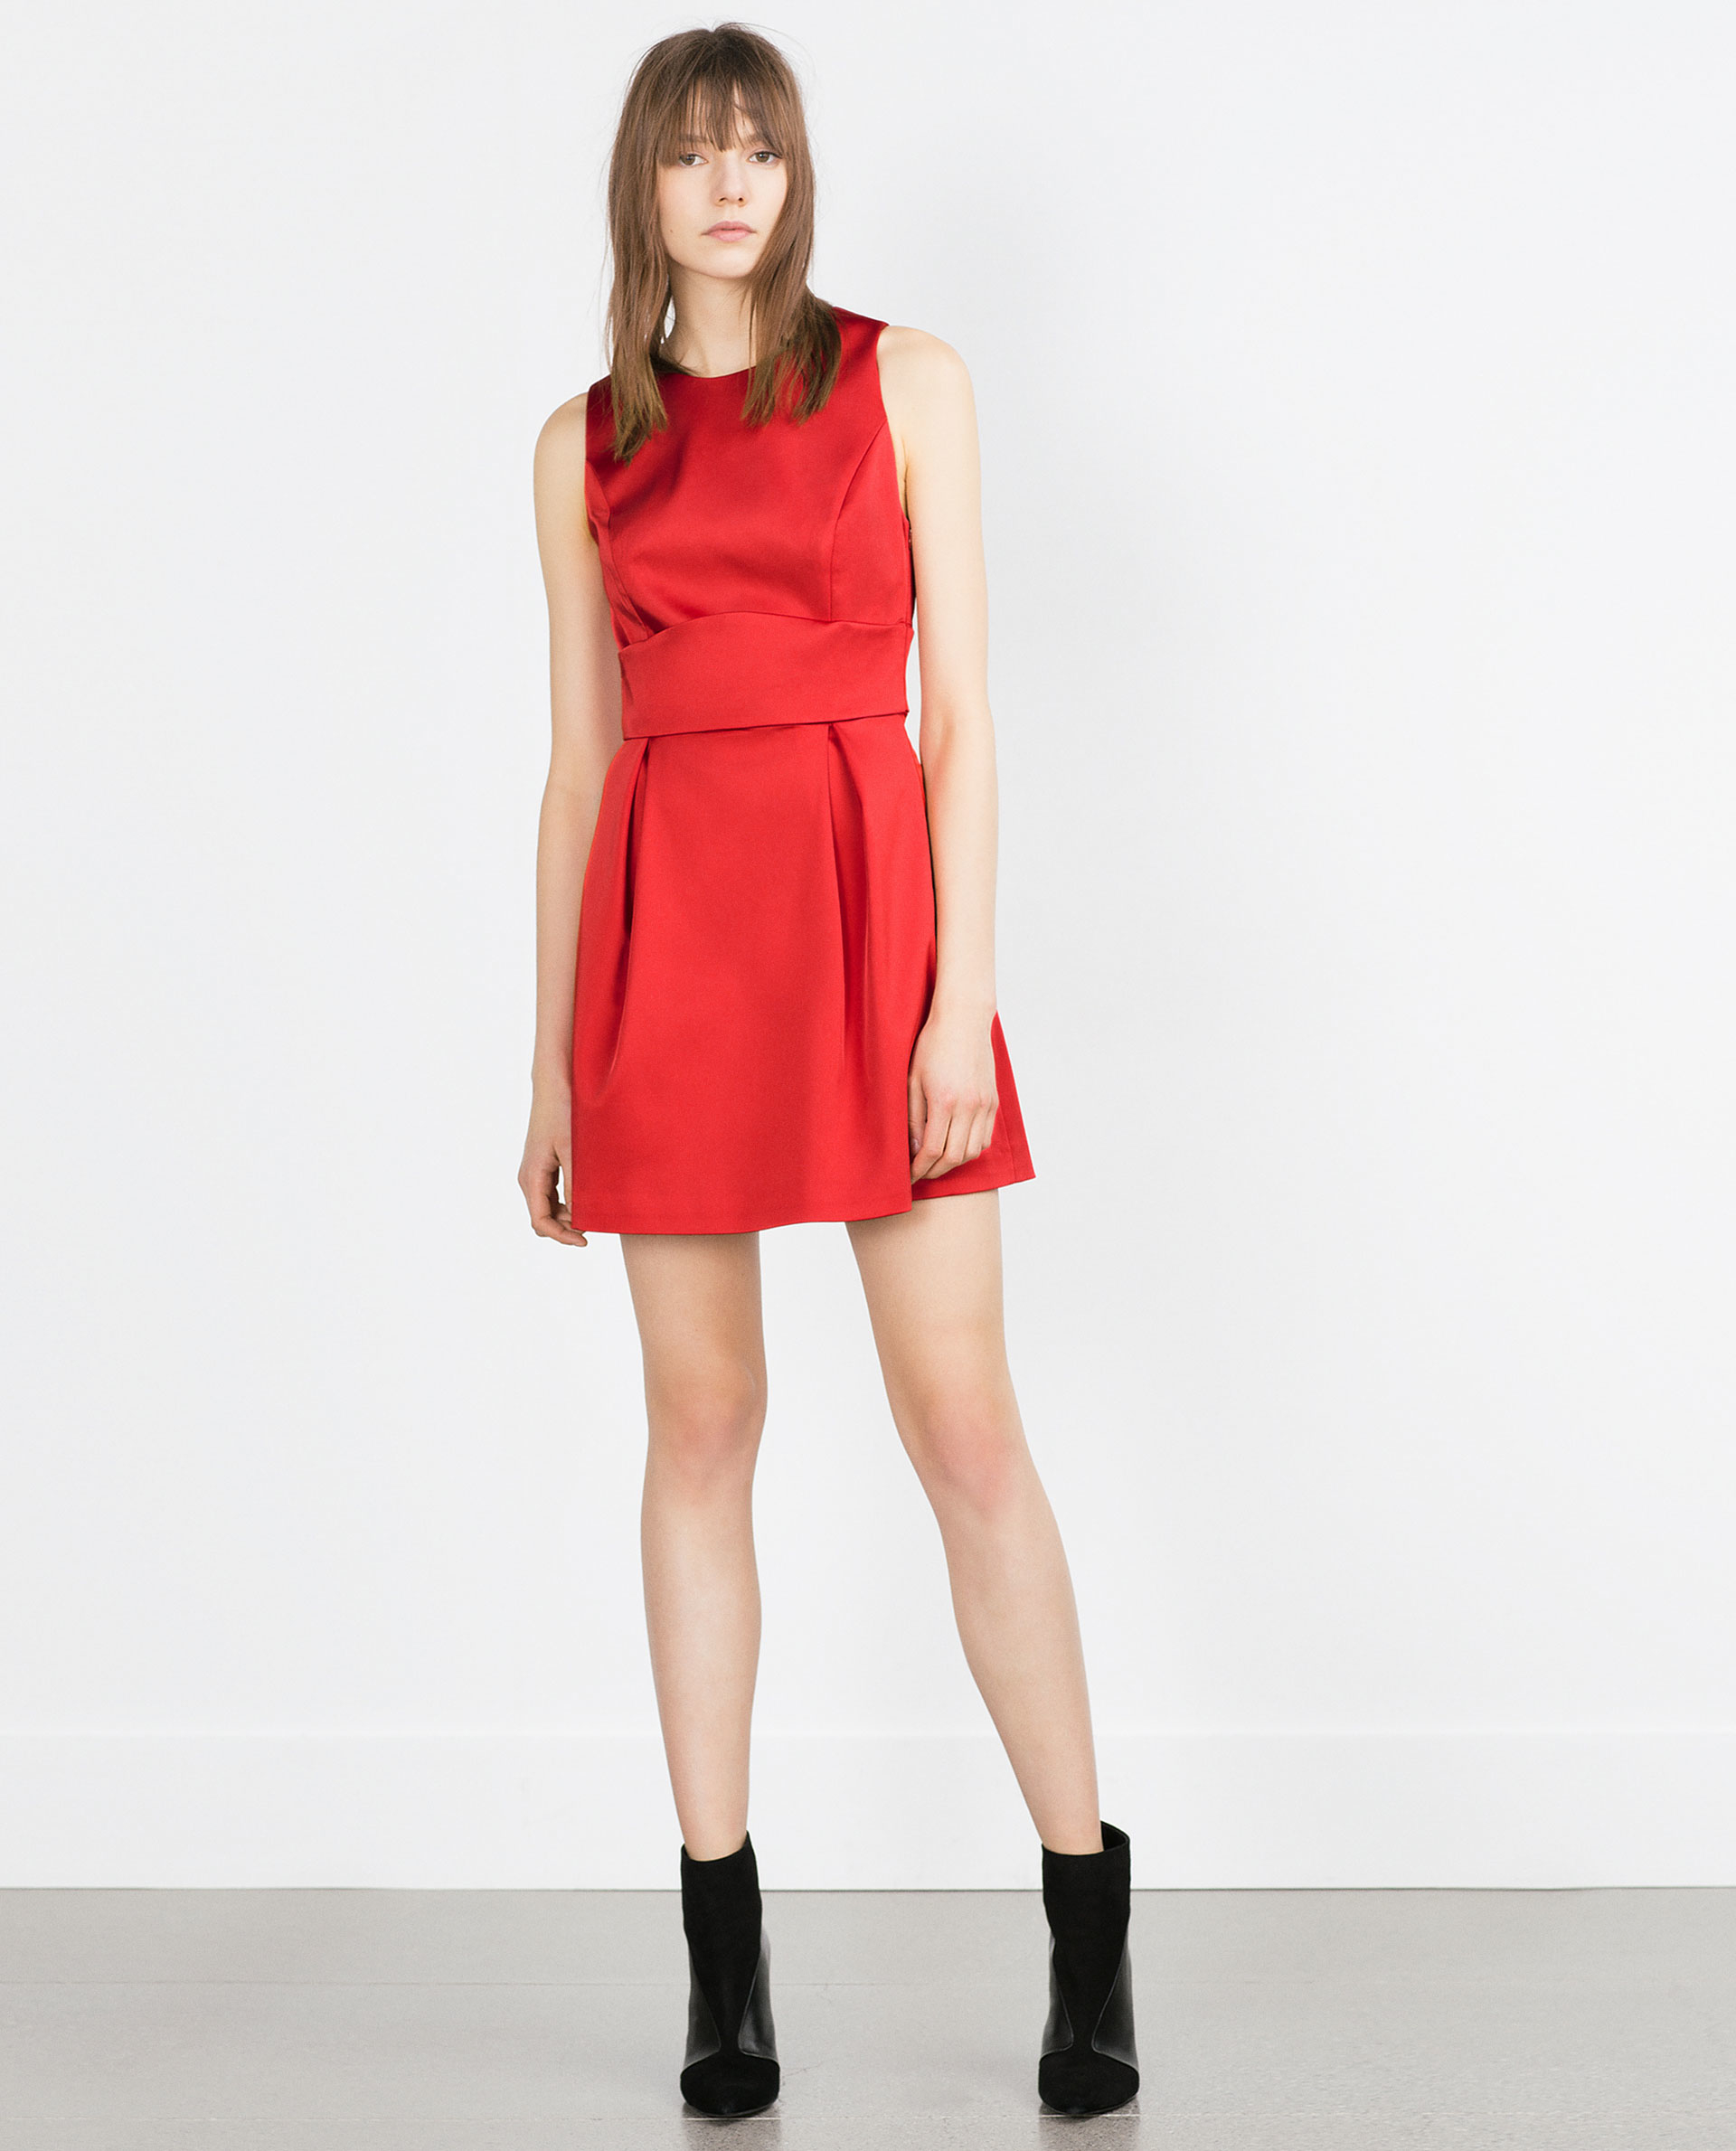 Zara Dress With Central Gathering in Red - Lyst